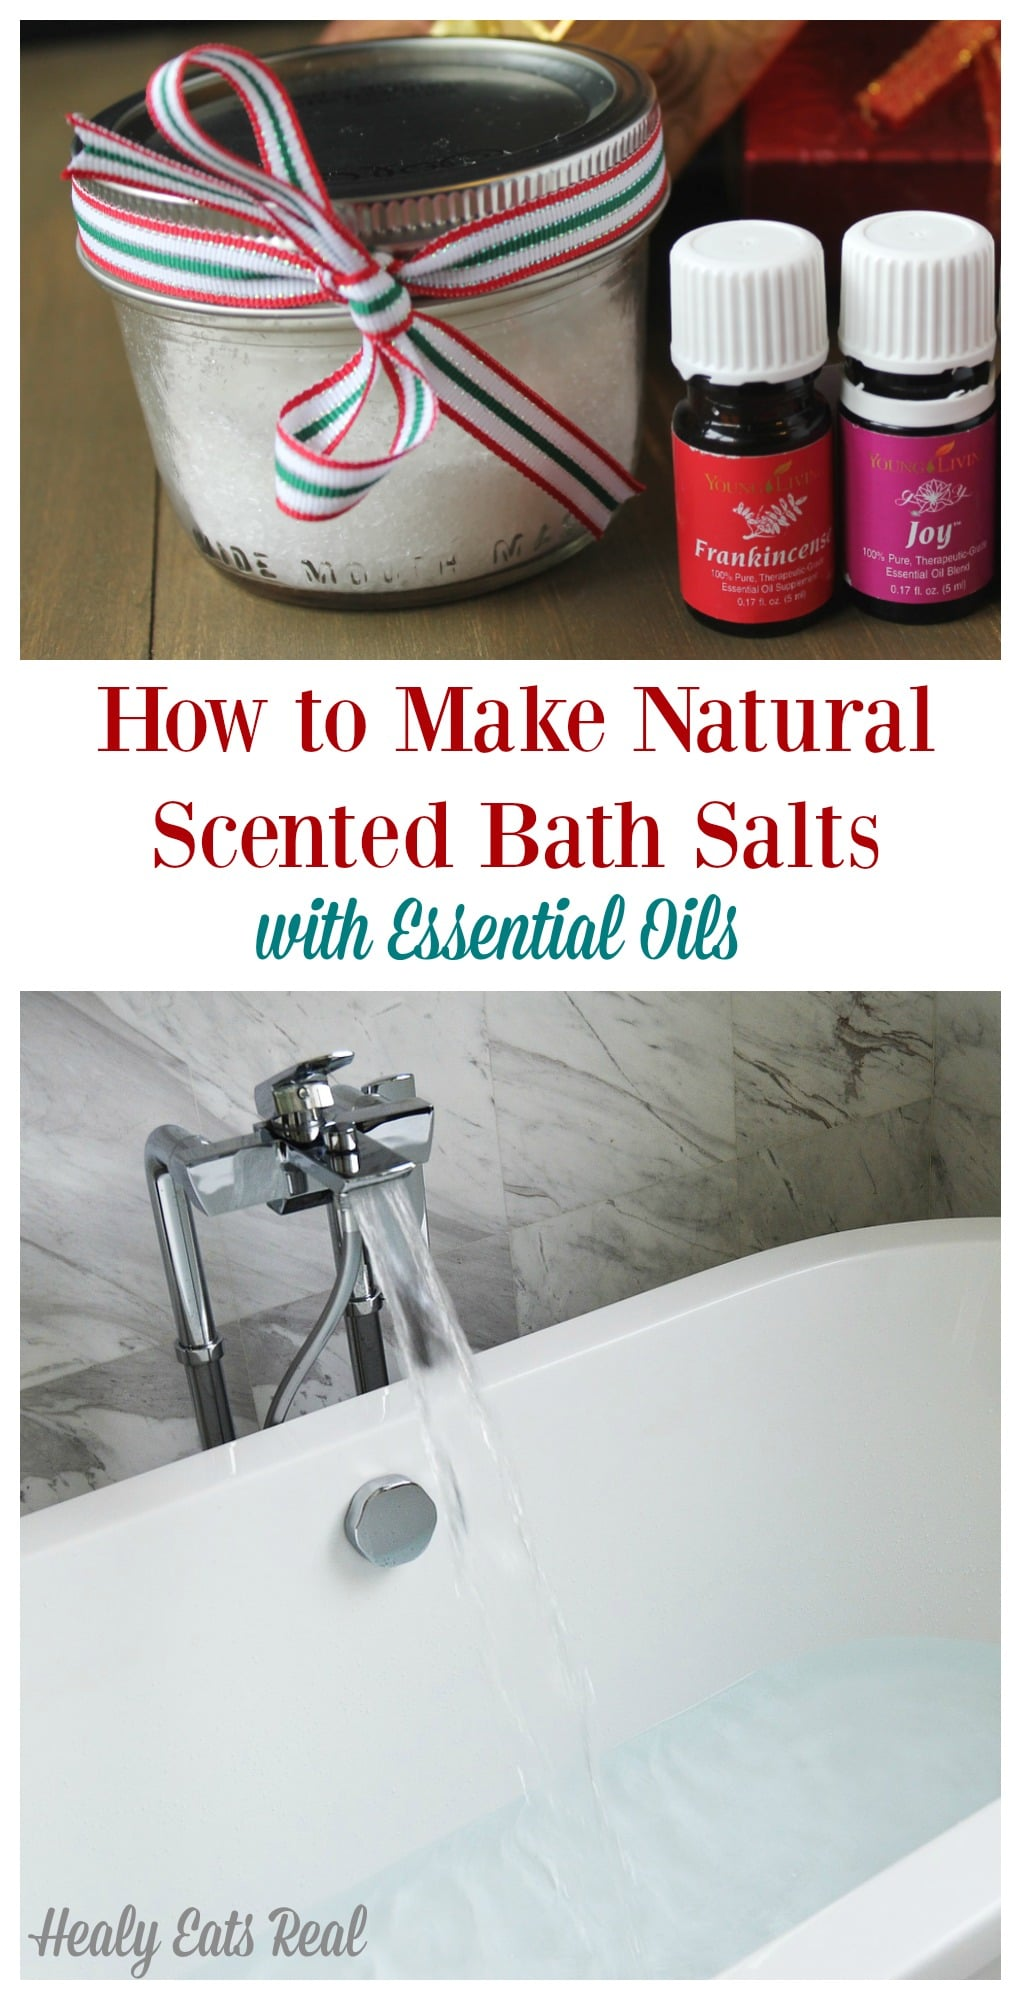 How to Make Bath Salts with Essential Oils - I'm so excited to share with you how to make bath salts since it is so quick and easy to do! You can customize it to whichever scent you'd like. #bath #bathsalts #salts #essentialoils #healyeatsreal